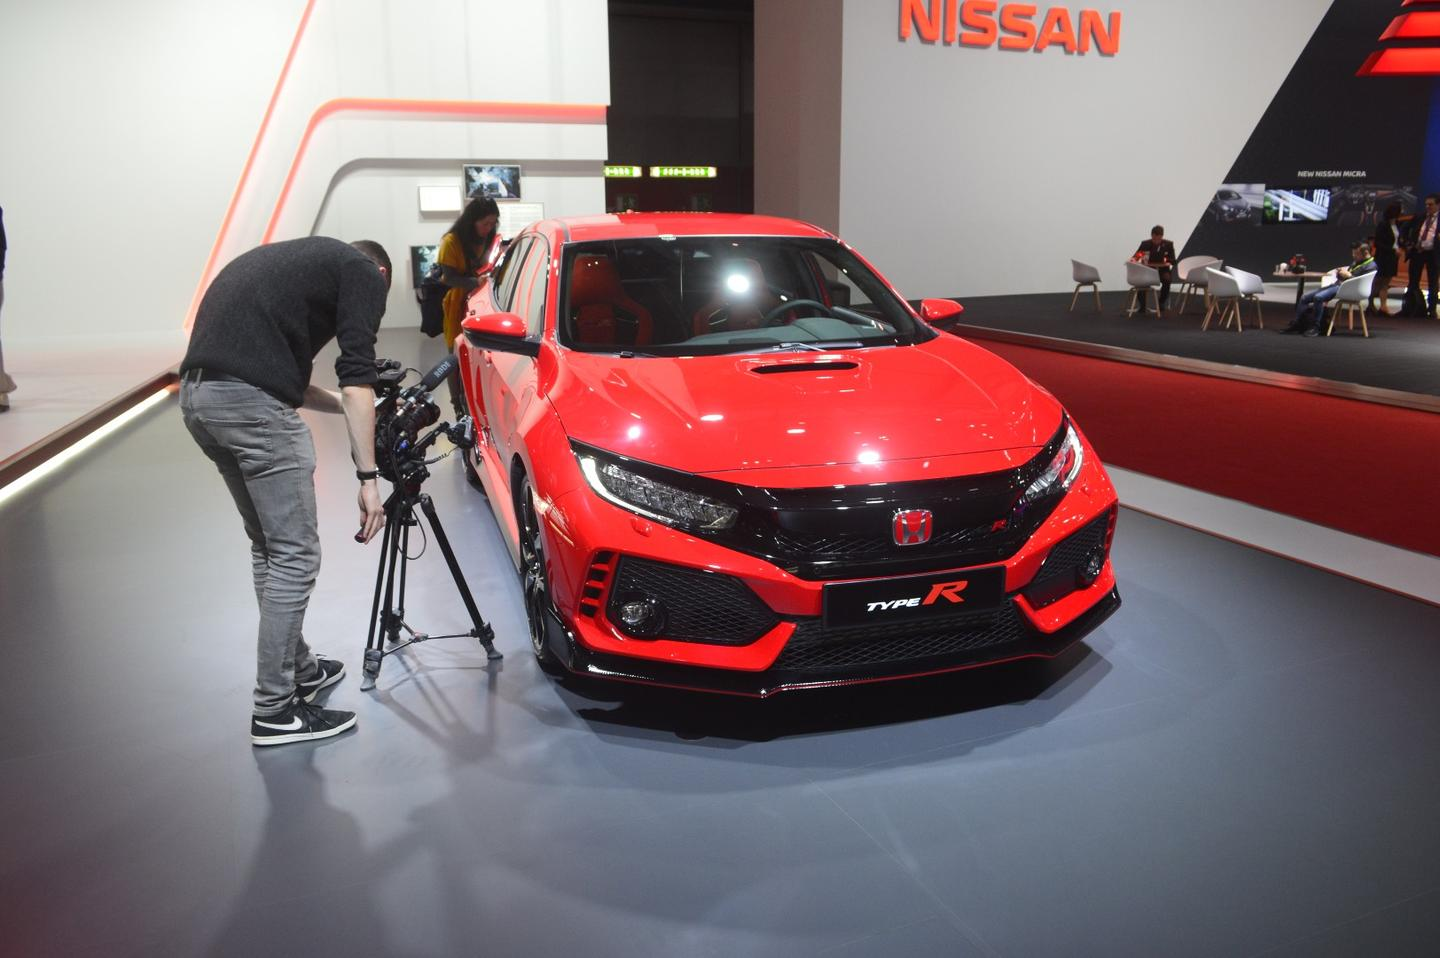 The 2017 Honda Civic R made its debut at the Geneva Motor Show